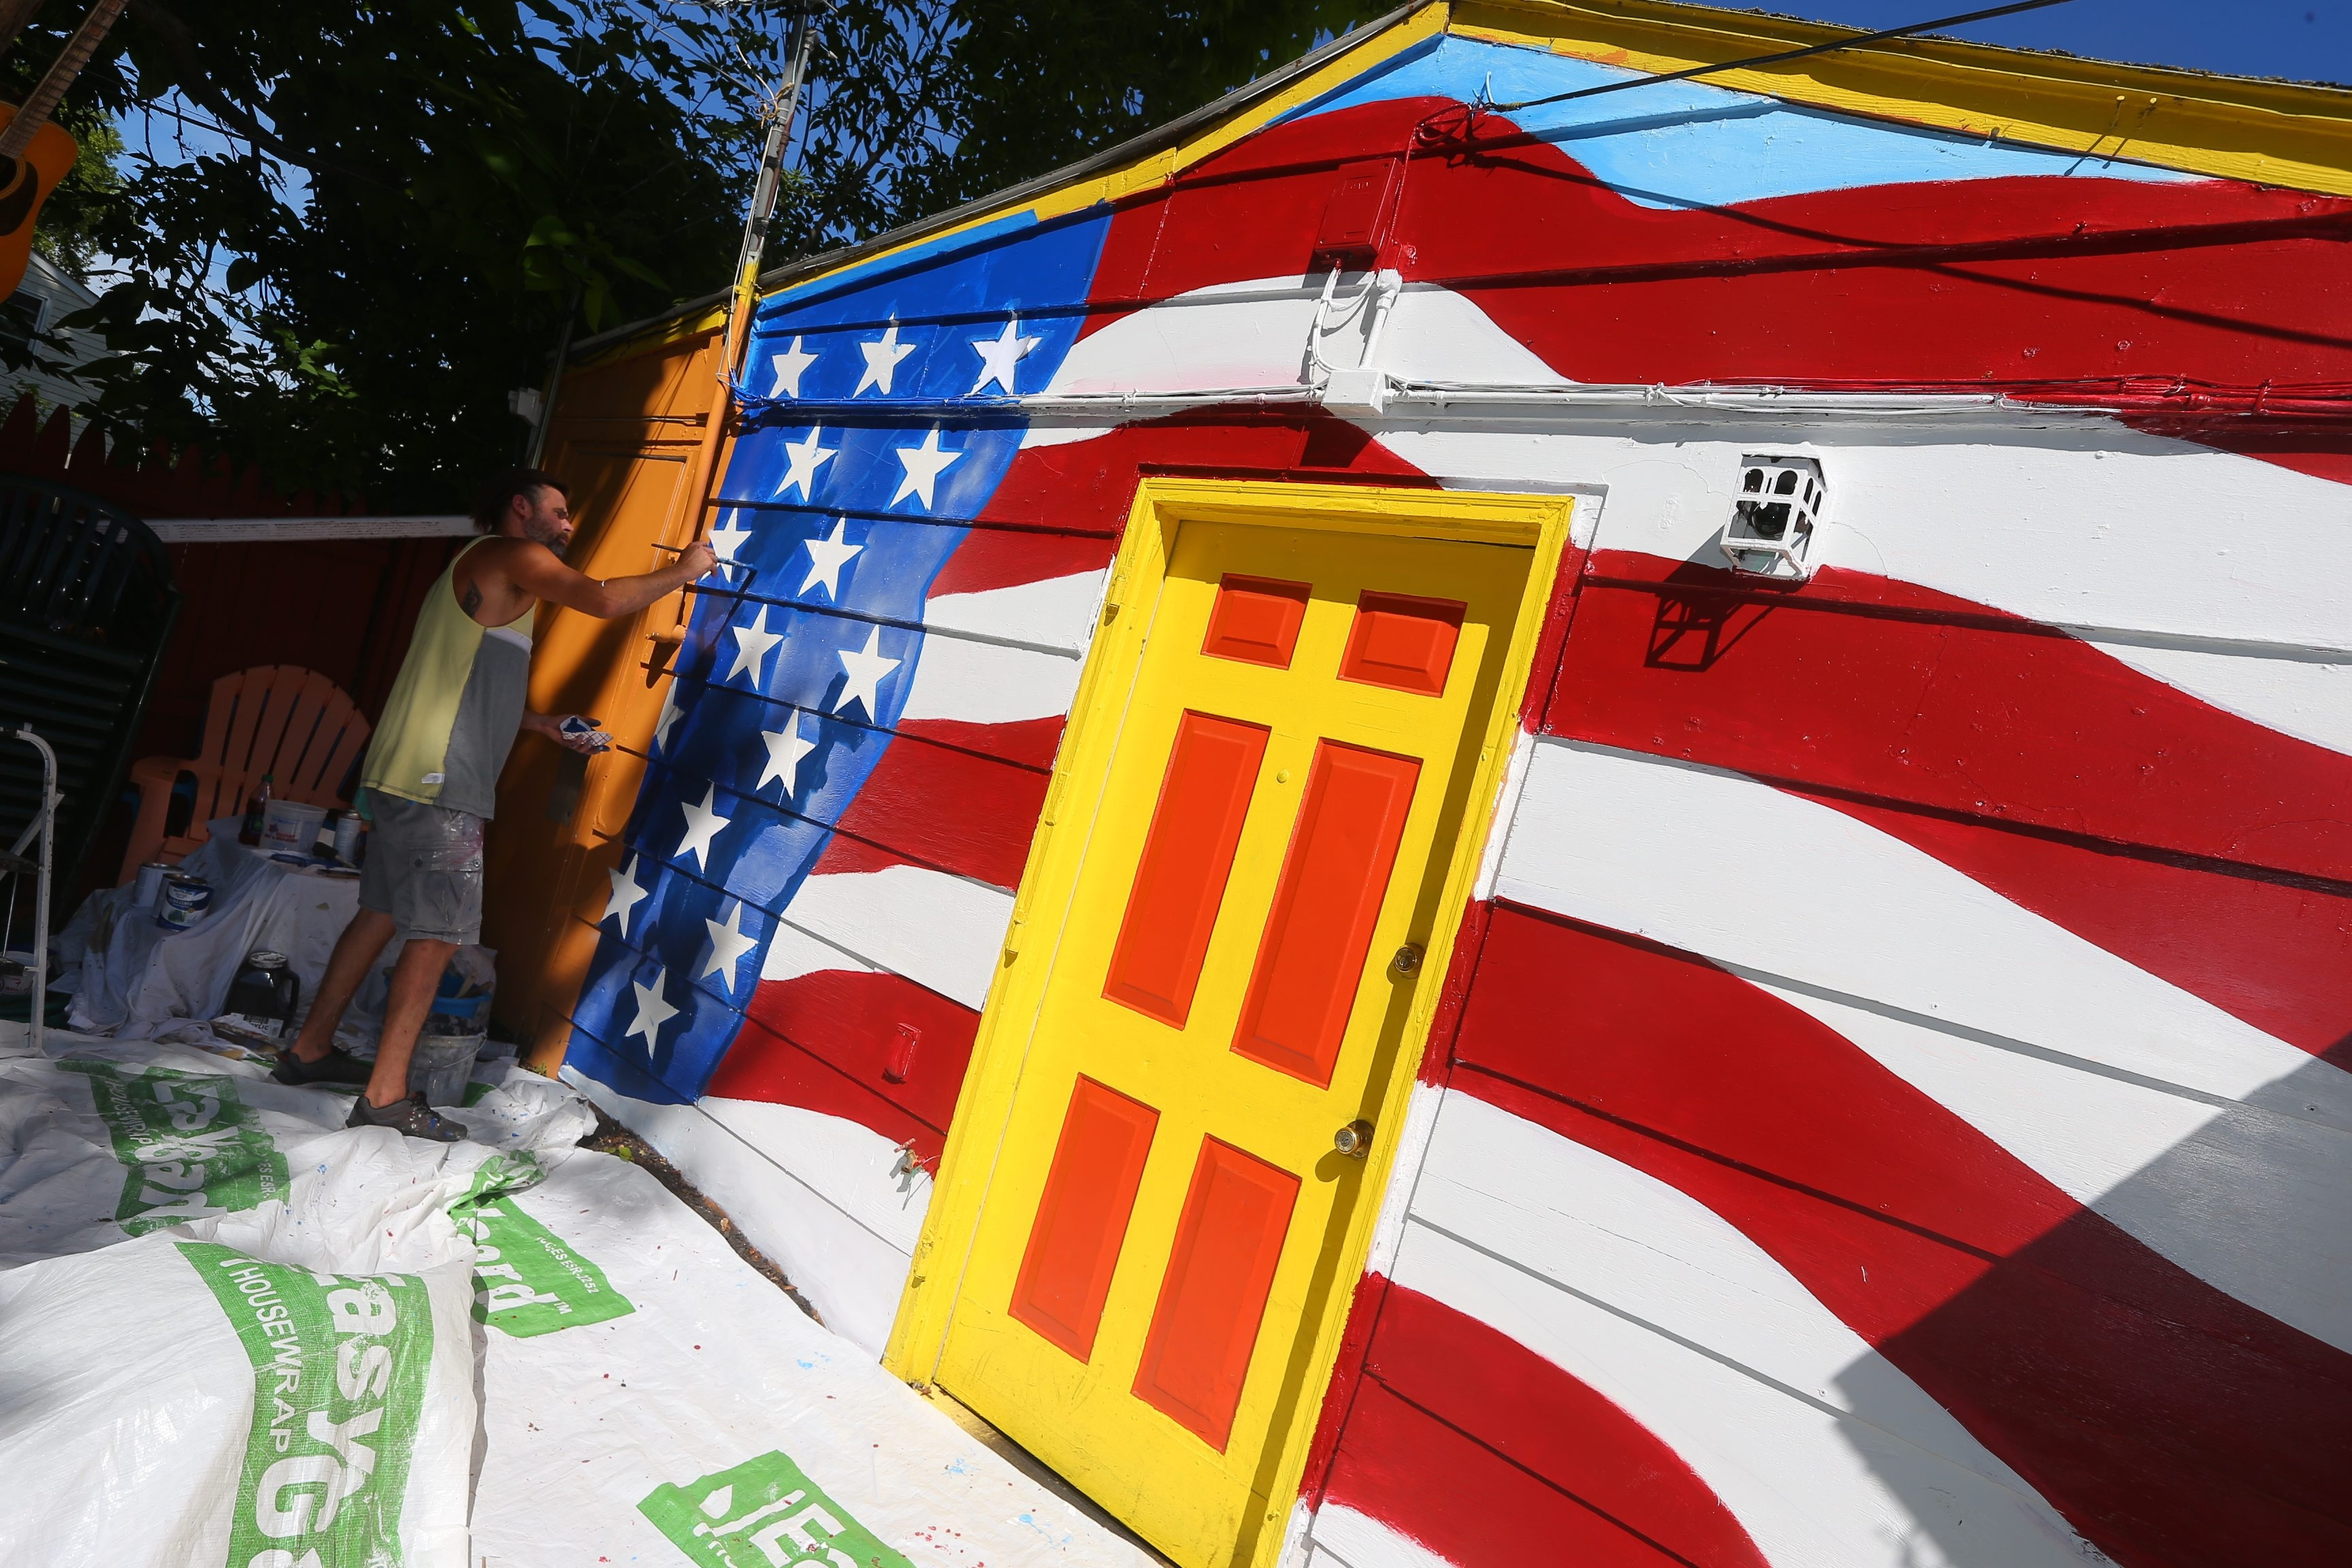 Clarence artist Blair Rusin paints an American flag mural Thursday in the outdoor seating area at Old Man River restaurant in Tonawanda in support of Vietnam Veterans Chapter 77.